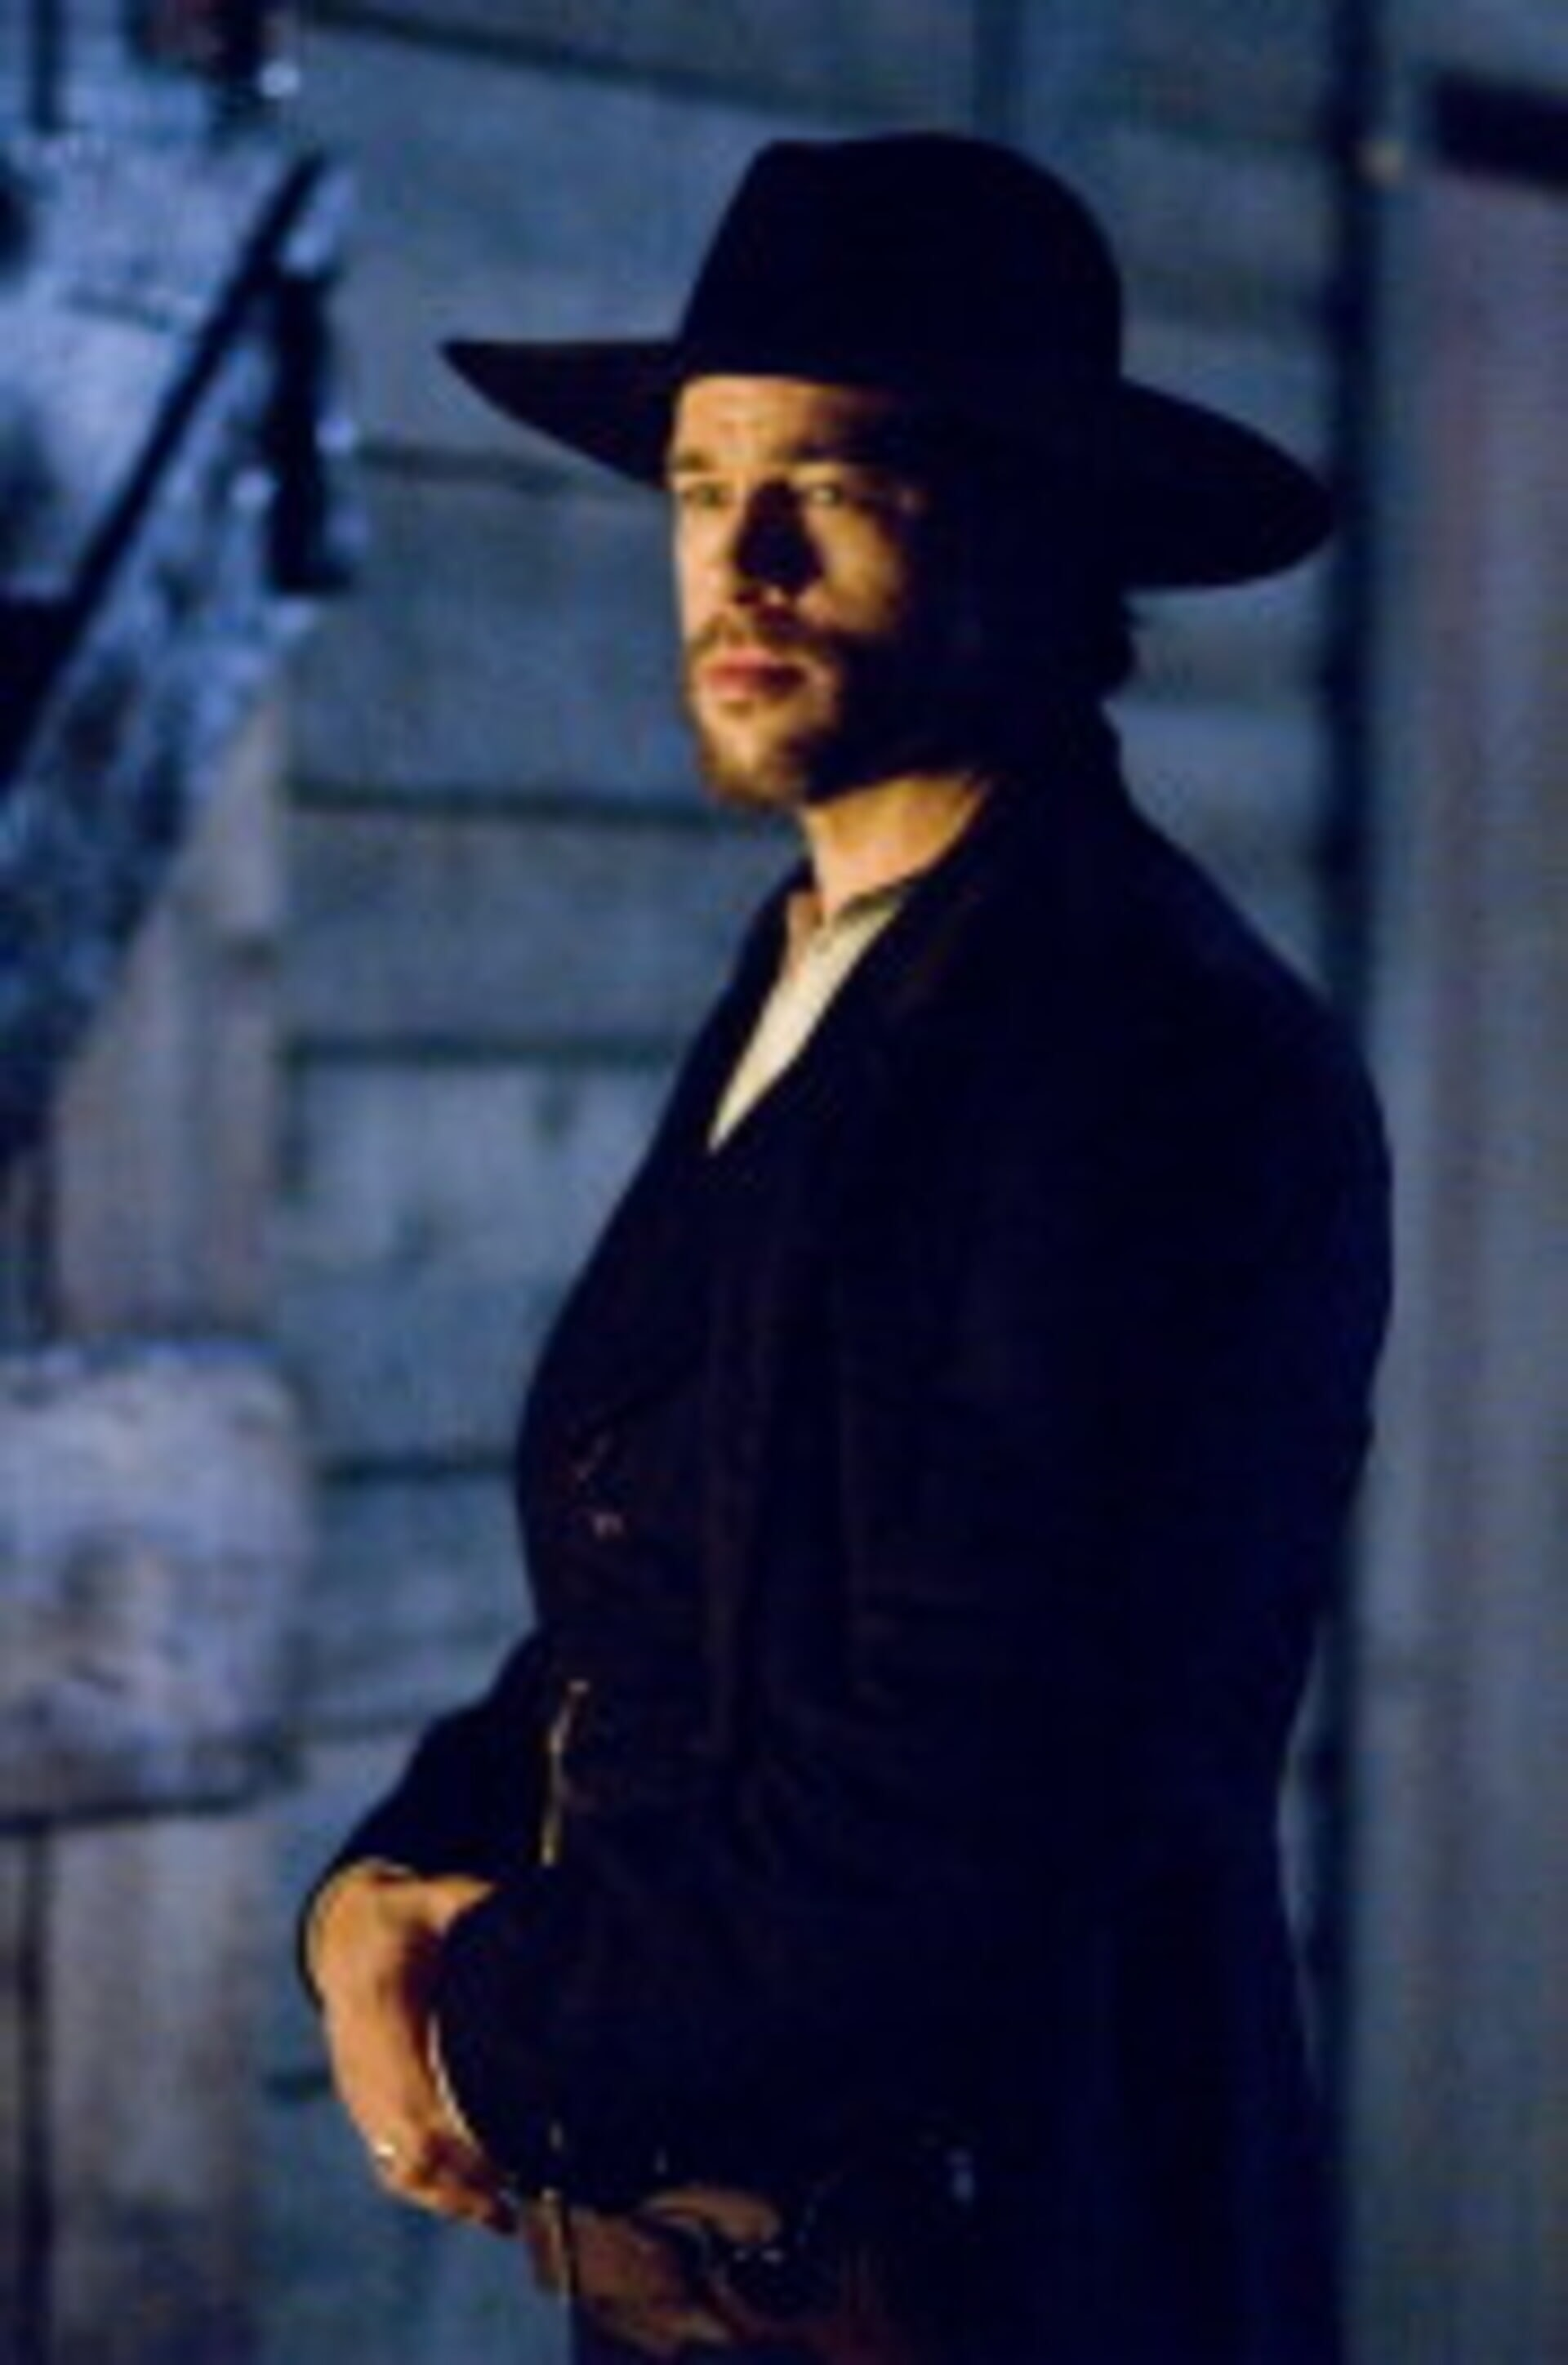 The Assassination of Jesse James by the Coward Robert Ford - Image 22